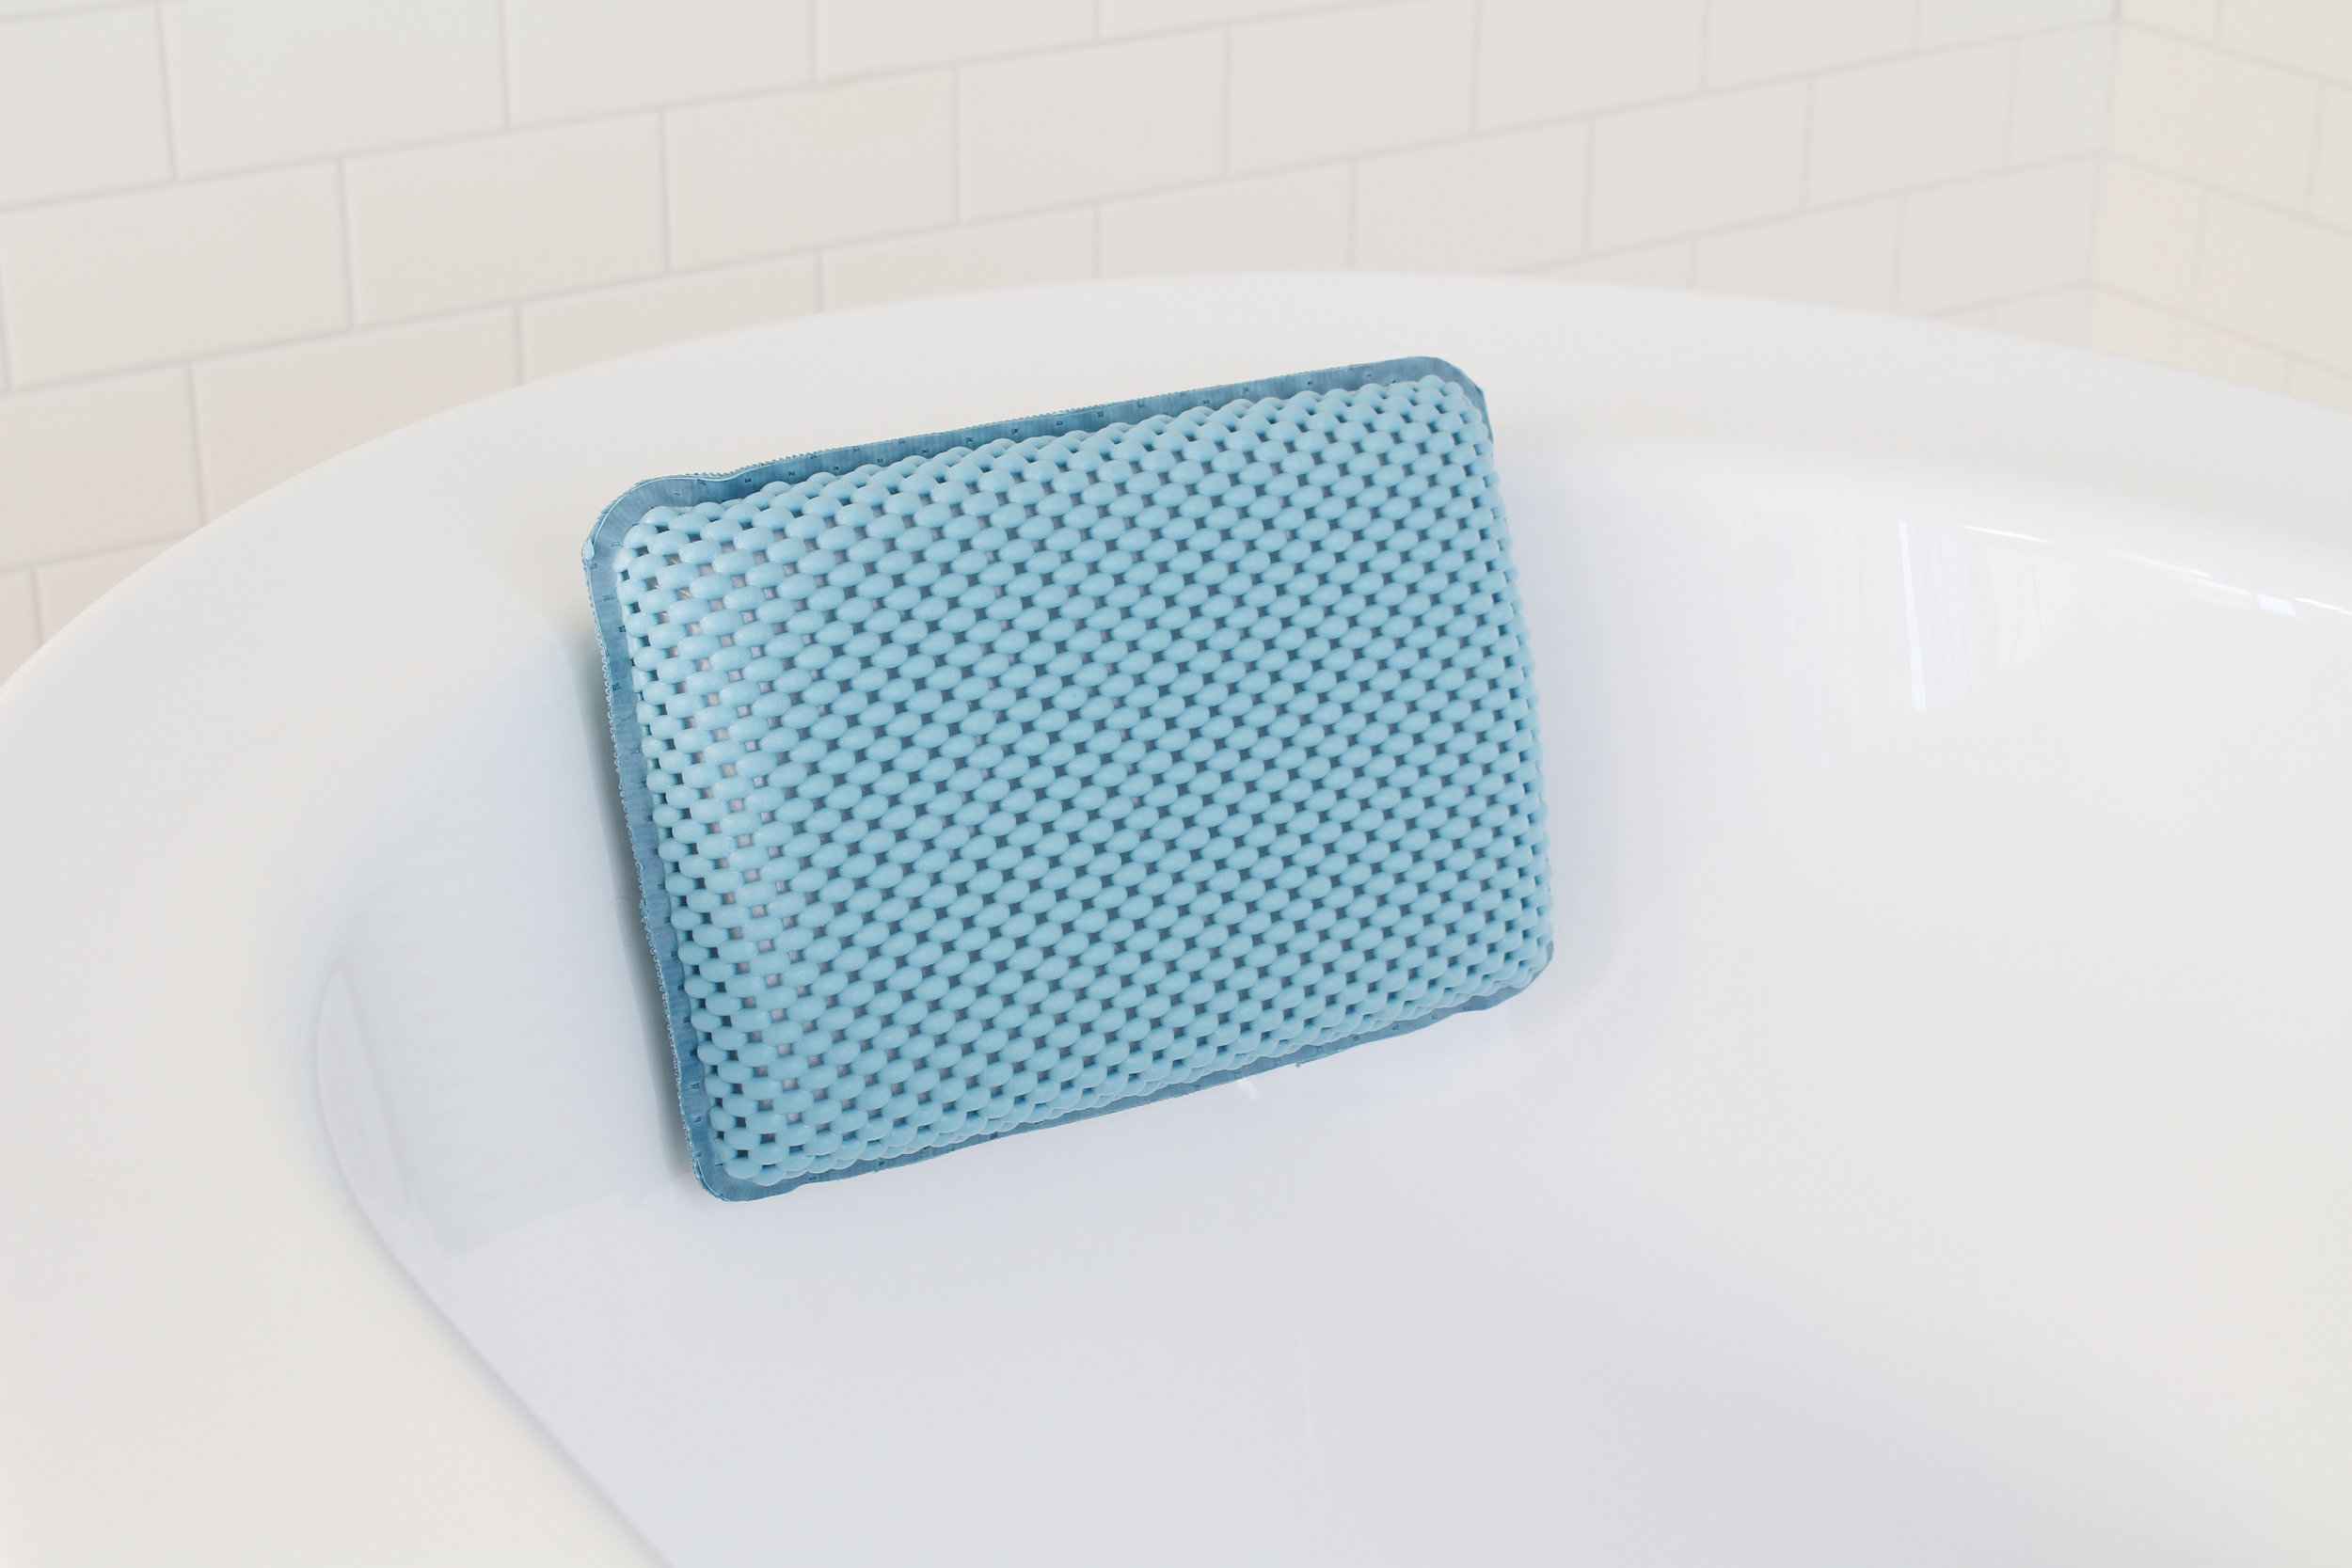 Softee bath pillow